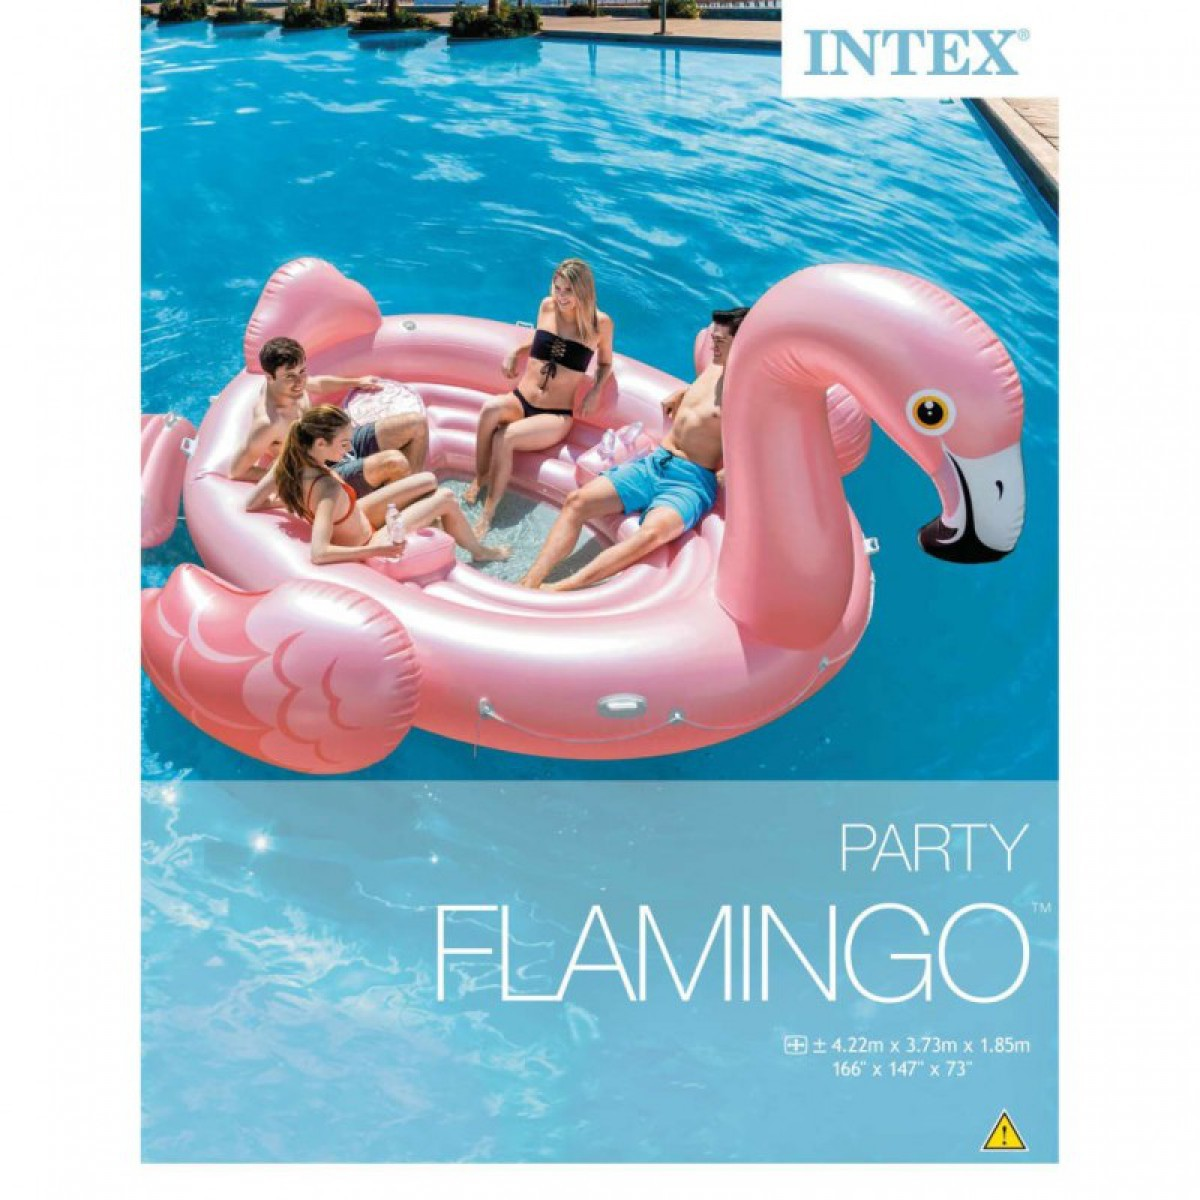 da00cbb32f INTEX Flamingó party sziget - 422x373x185 cm - BESTWAY strandcikkek ...